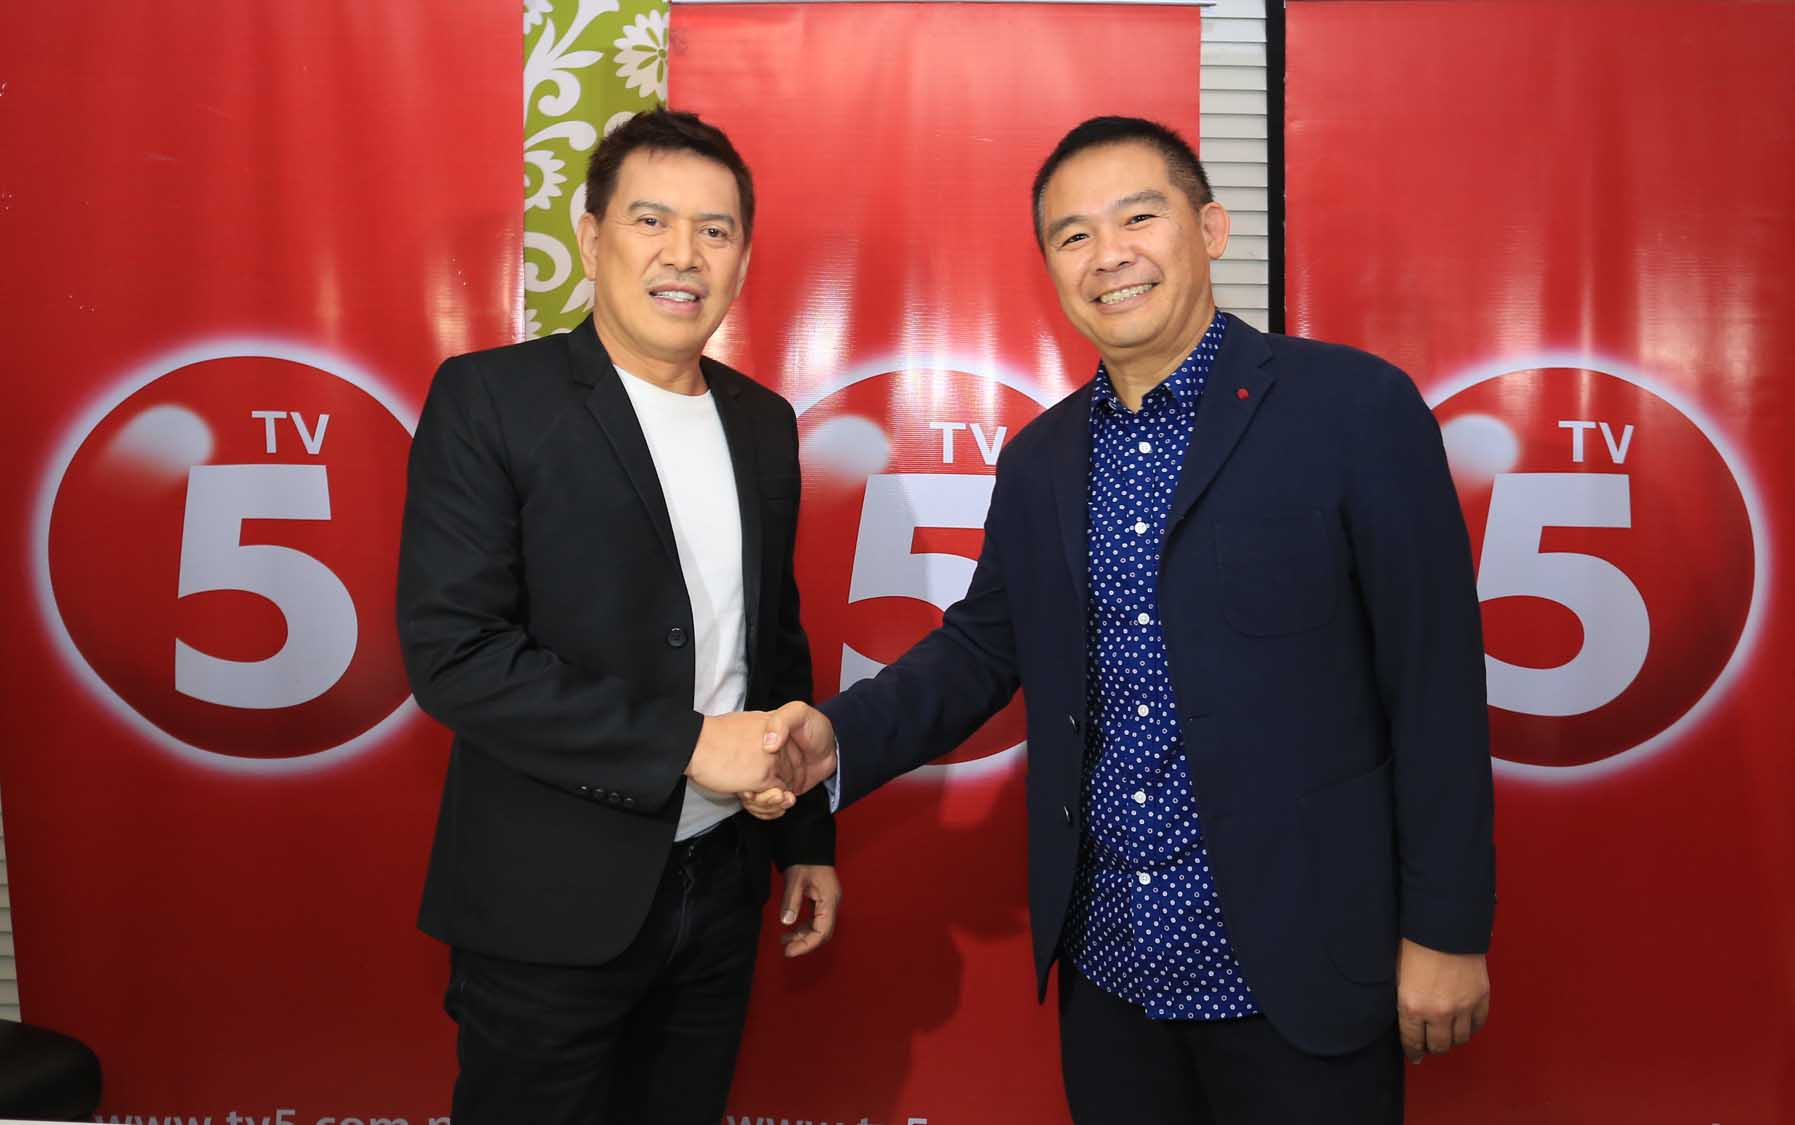 Brillante Mendoza brings brilliance in TV5 series